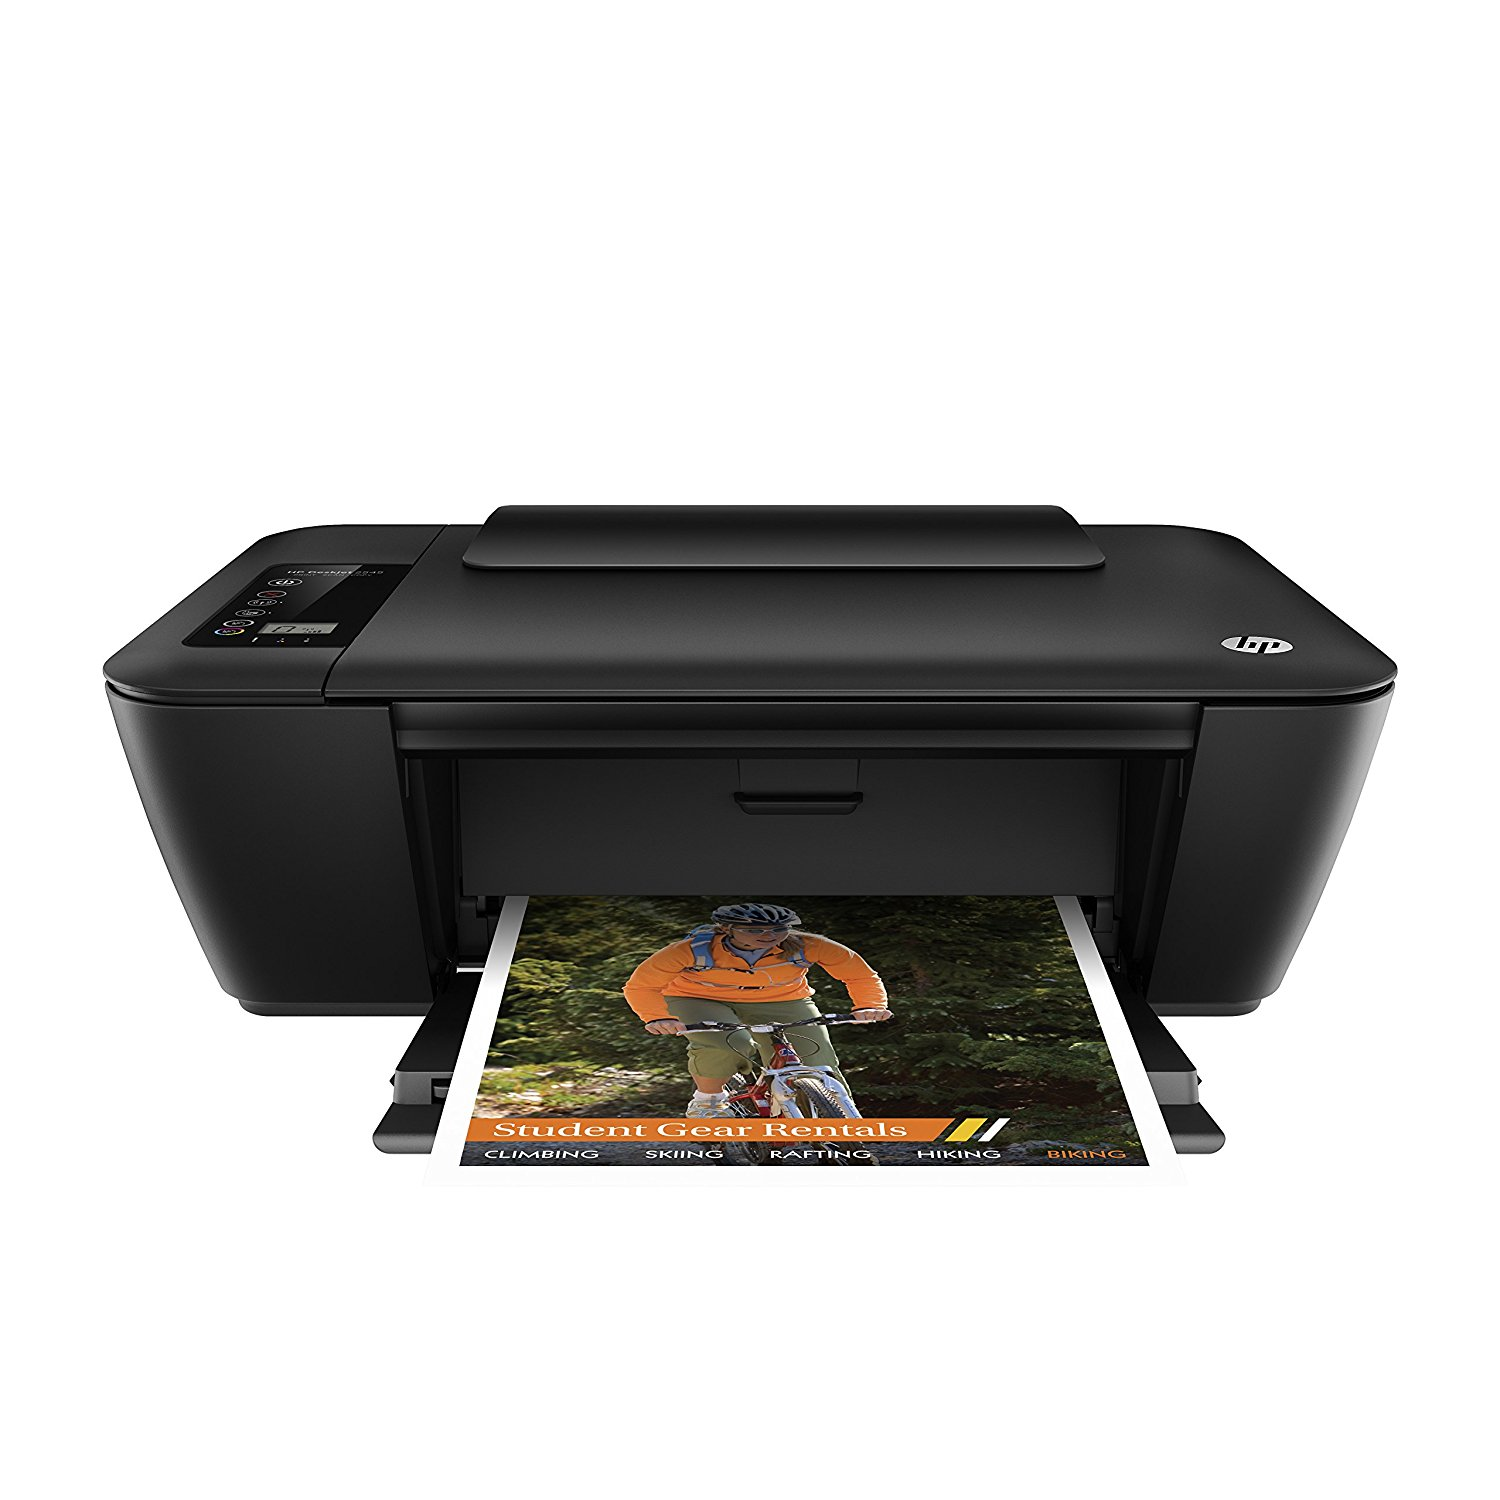 HP Deskjet Ink Advantage 2545 AllinOne Wireless Printer